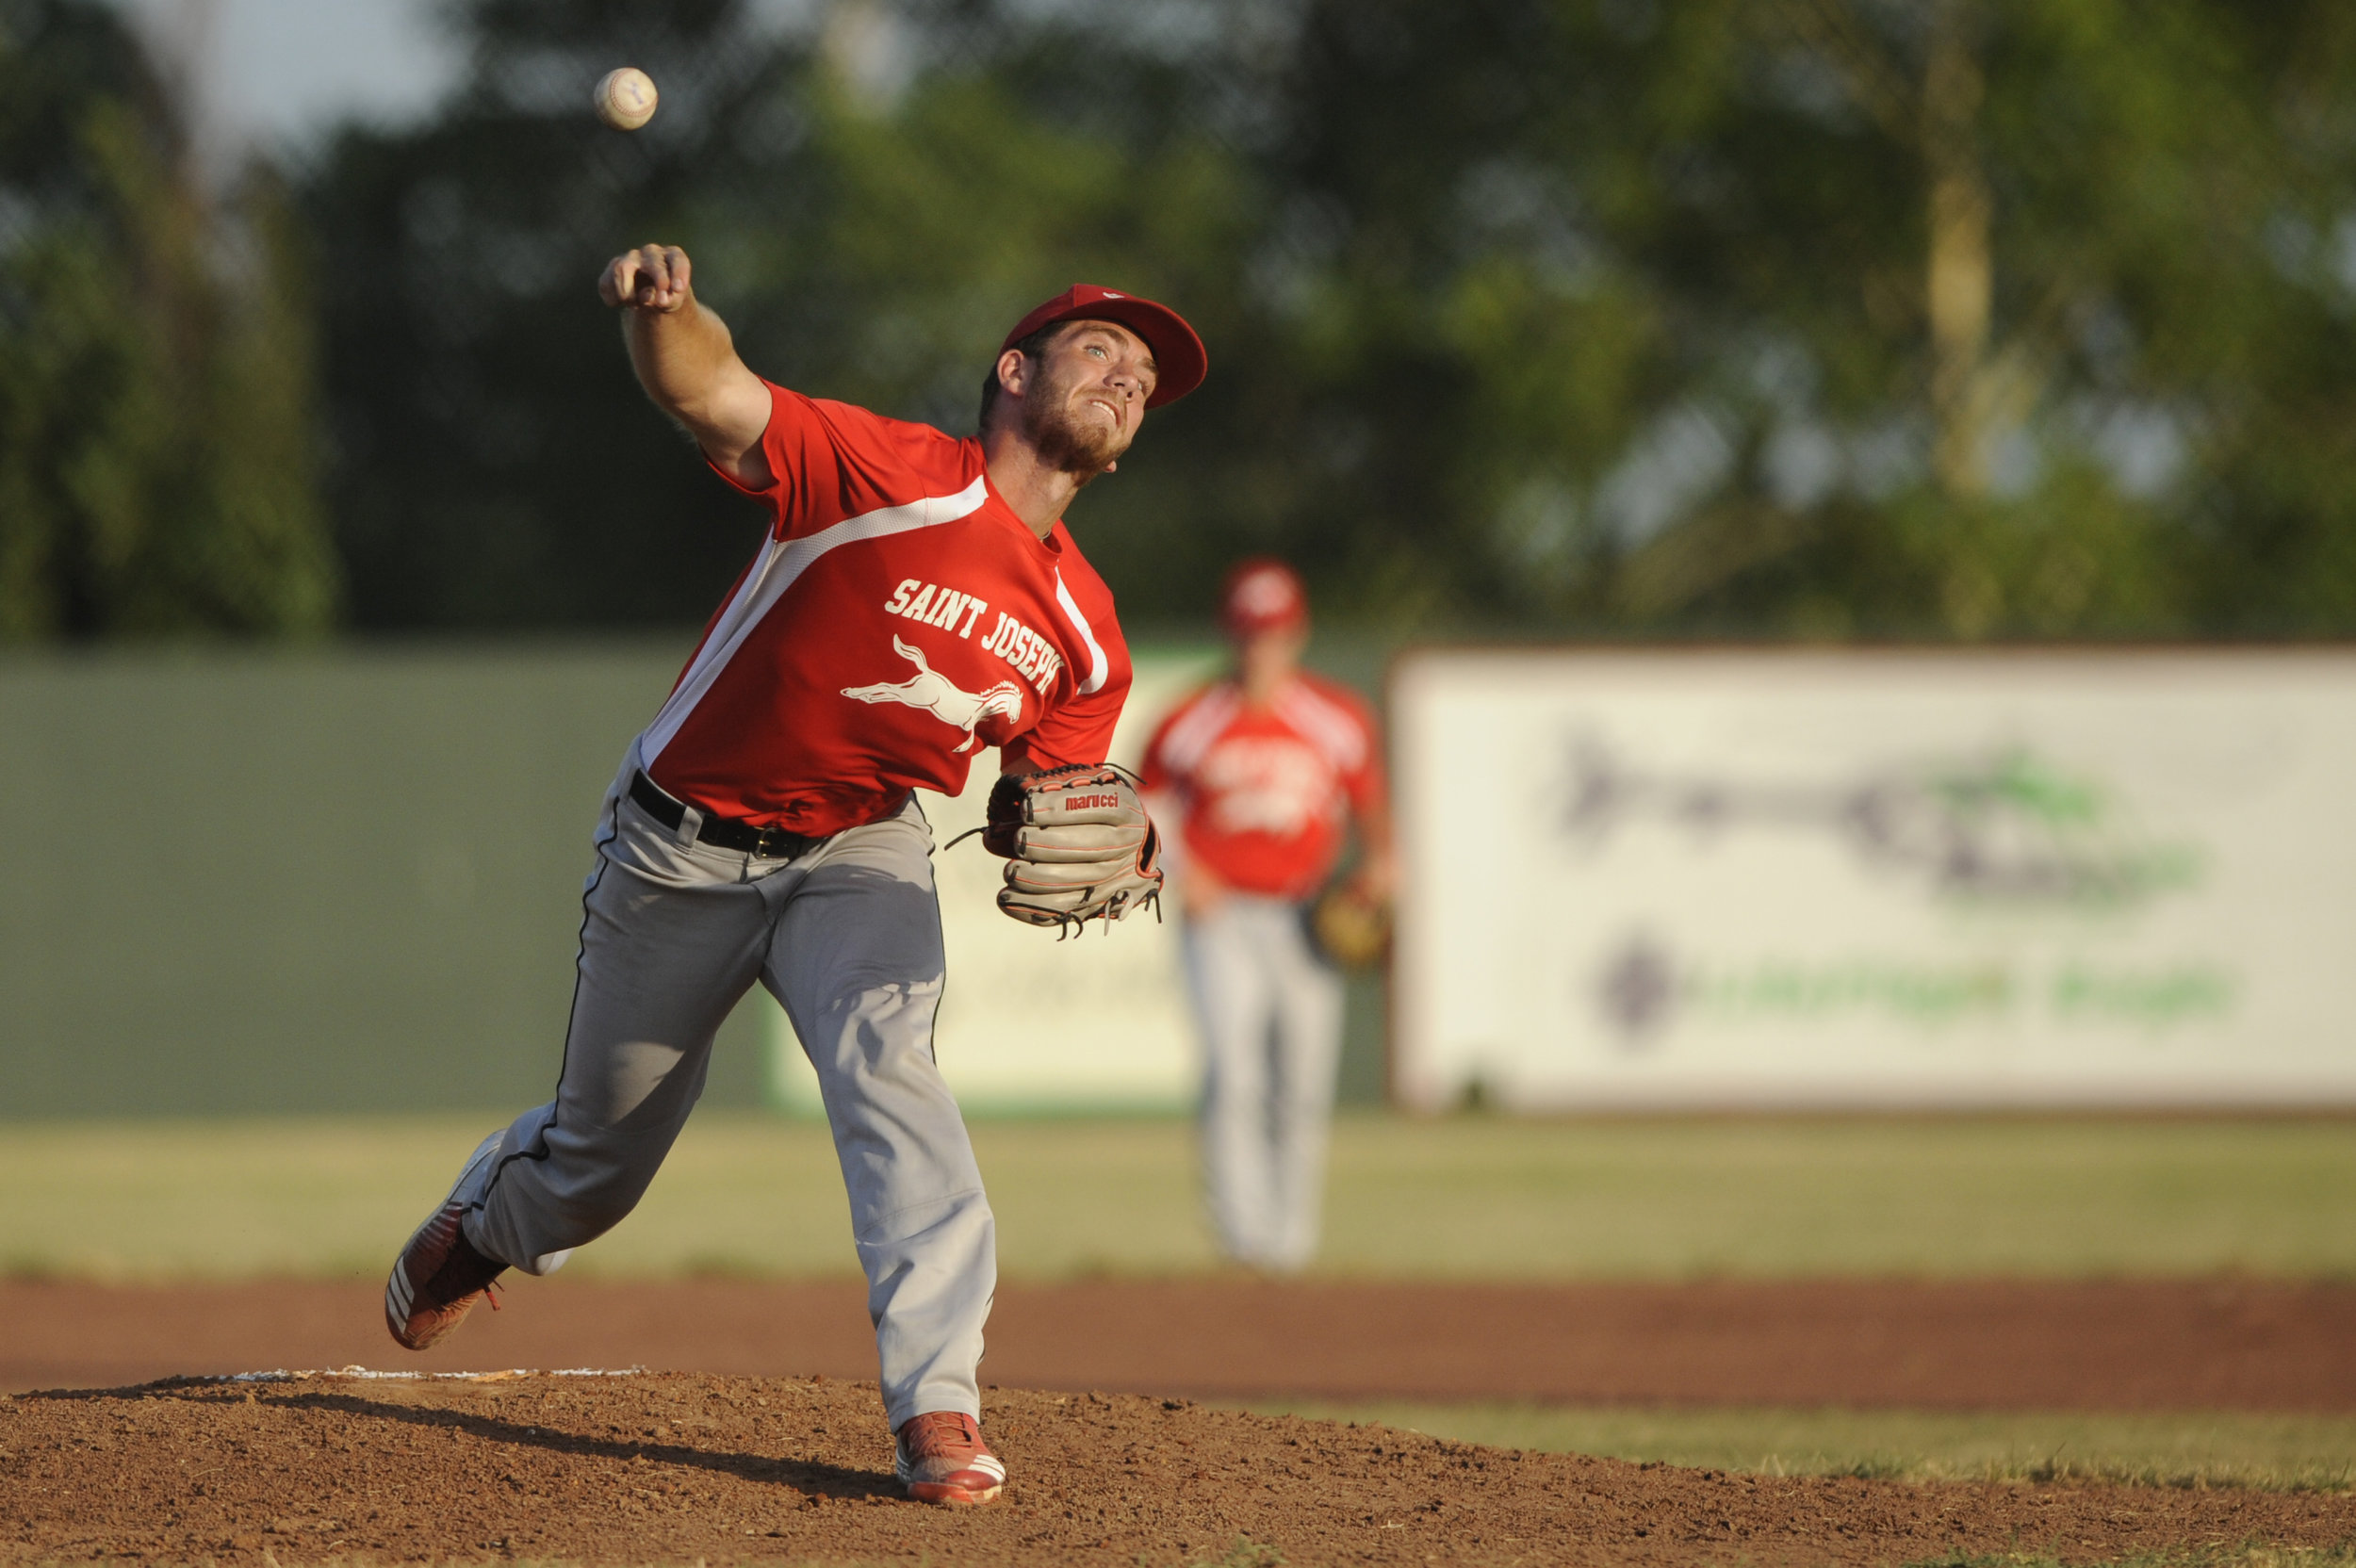 NICK INGRAM/Special to the Citizen  Park Hill South product Jacob Purl throws a pitch home during a St. Joseph Mustangs game earlier this season.